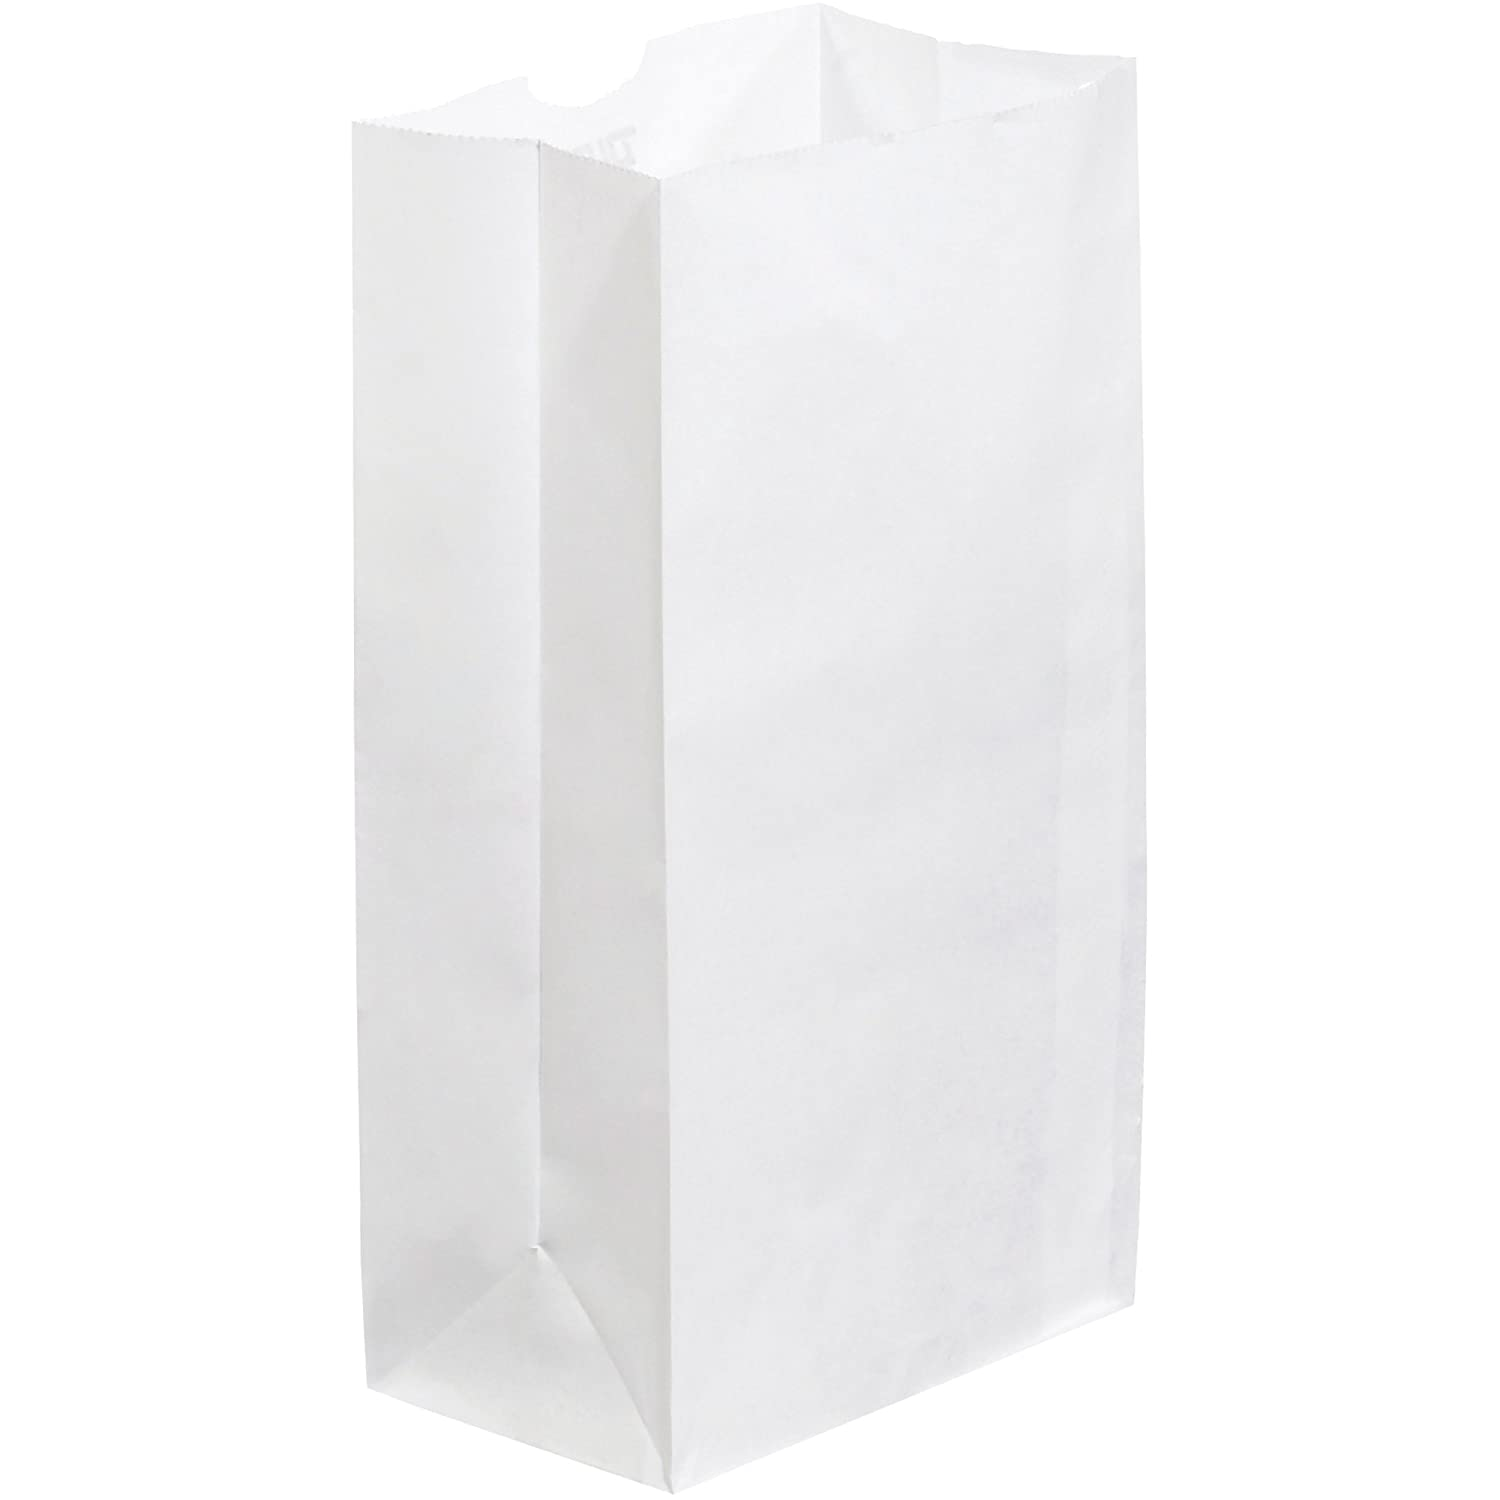 Grocery Bags 500//Case 6 1//8 x 4 x 12 3//8 White